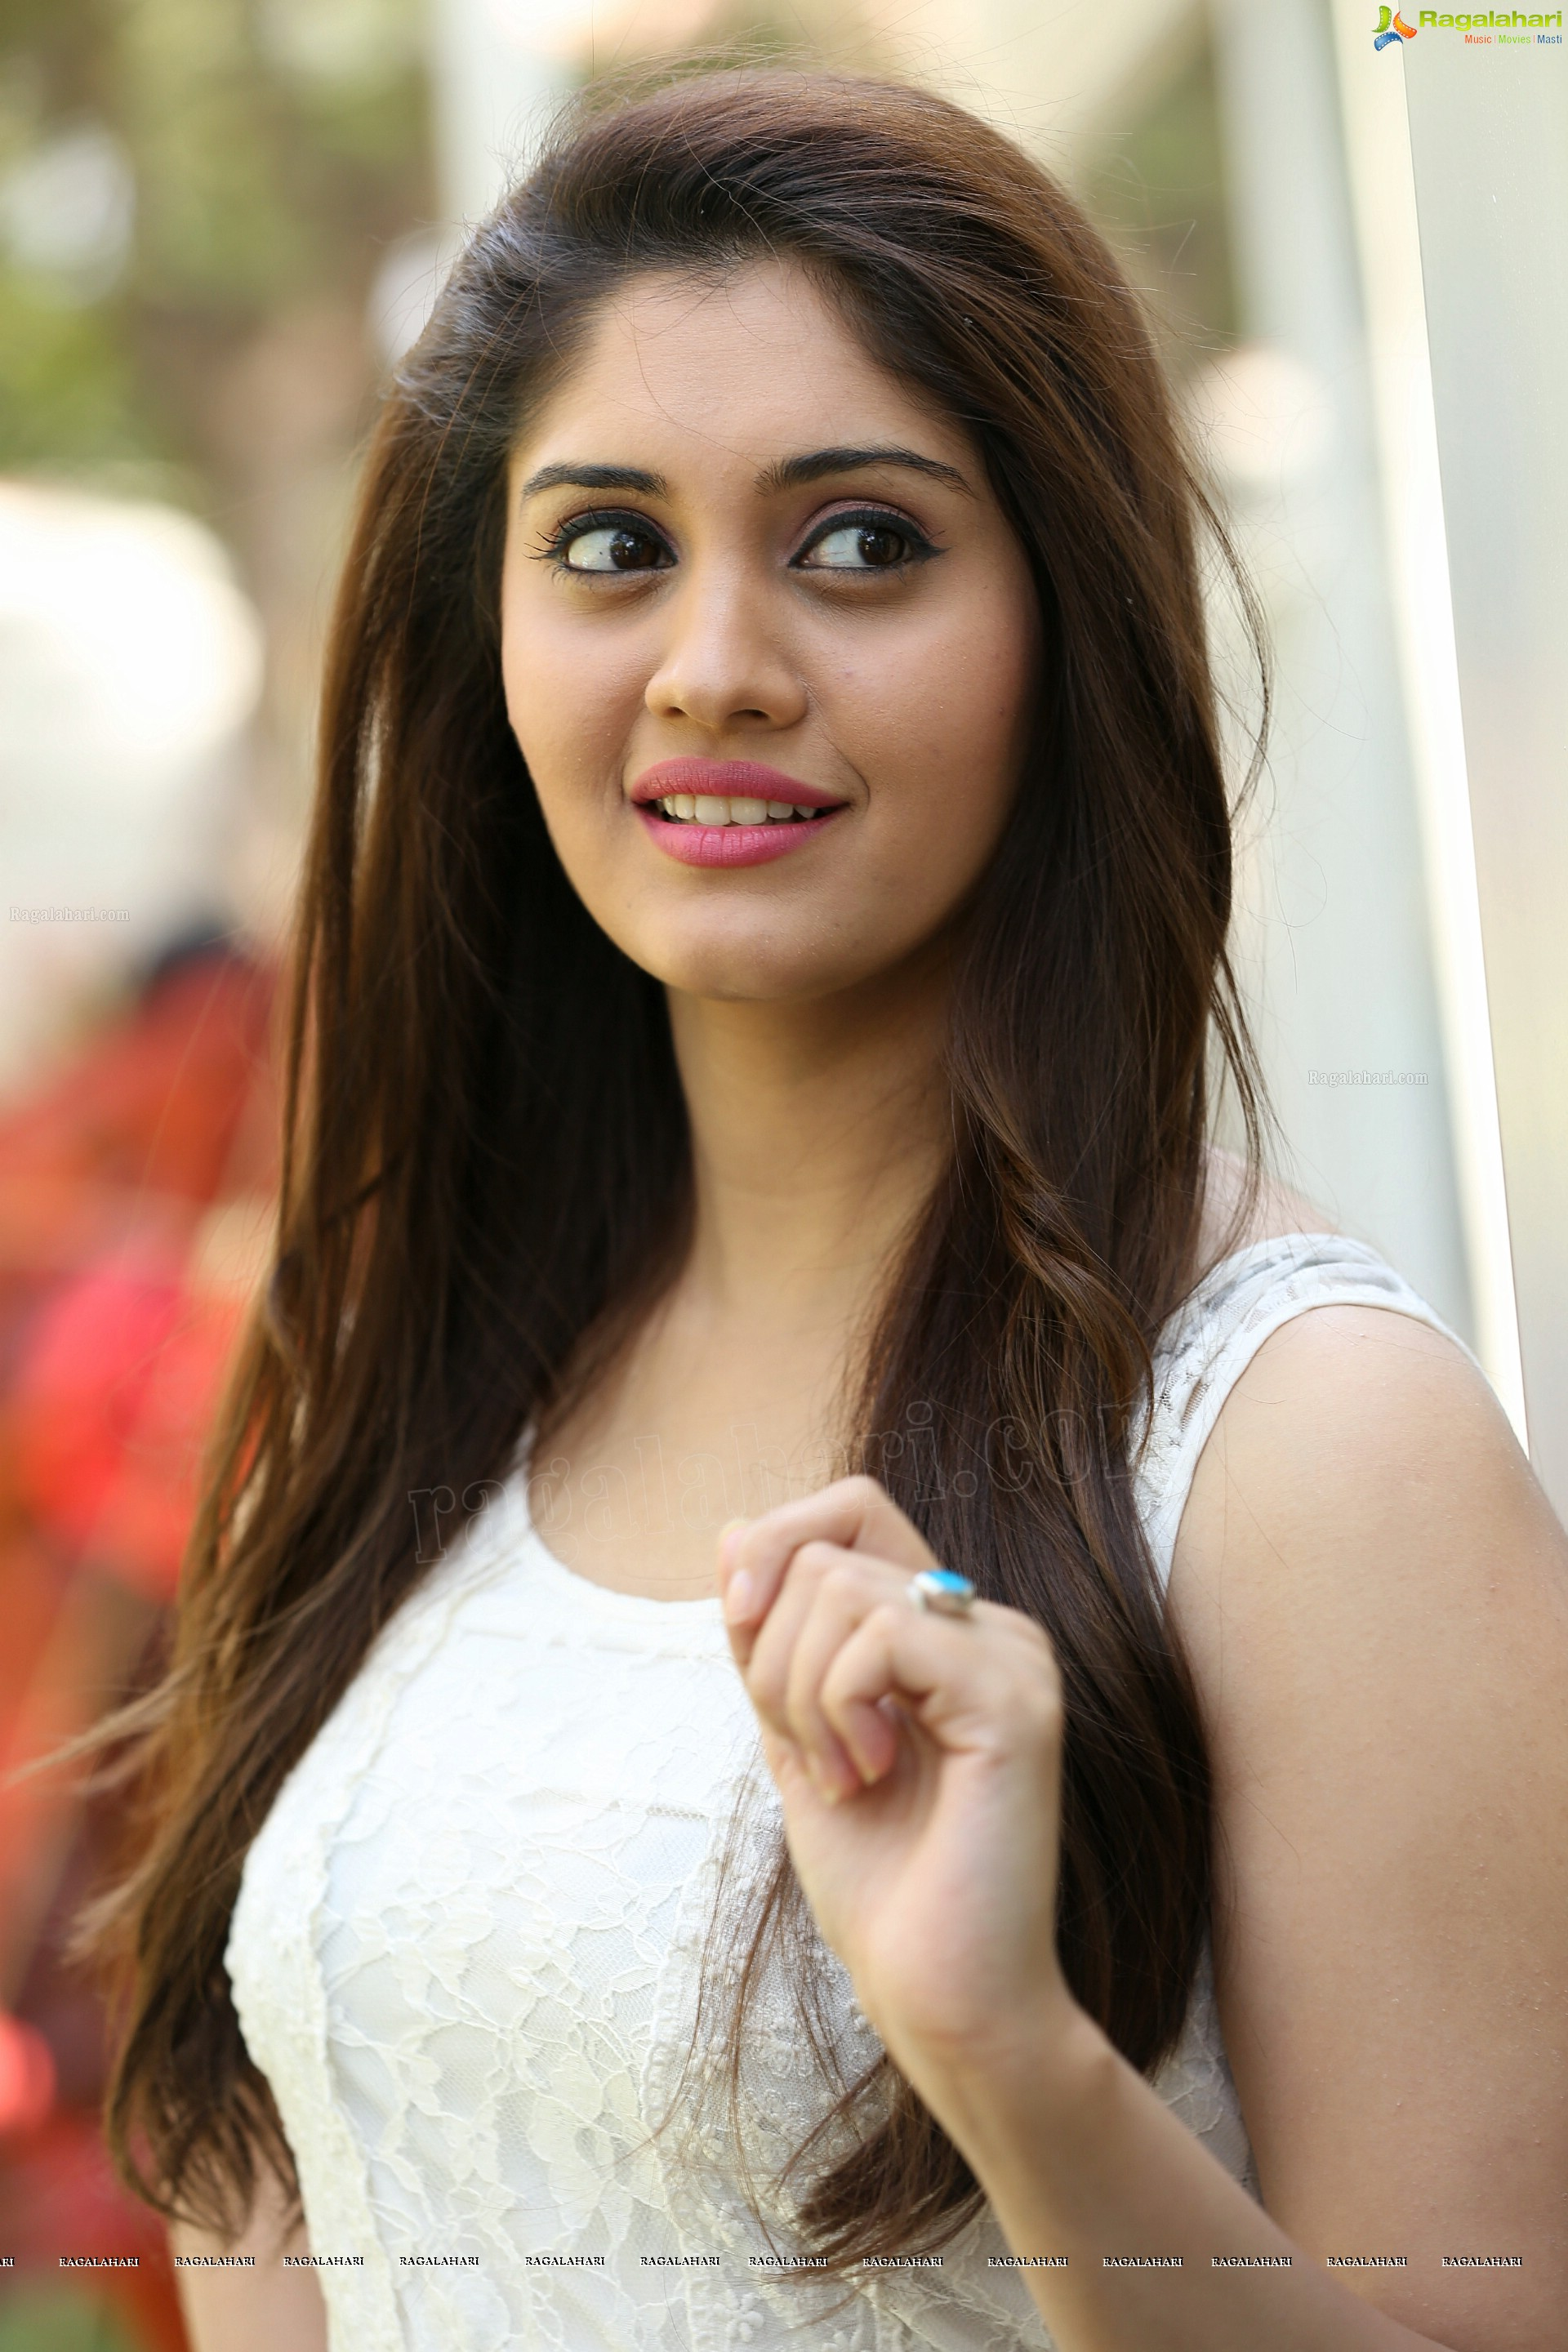 surabhi (high definition) image 27 | telugu heroines photos,images